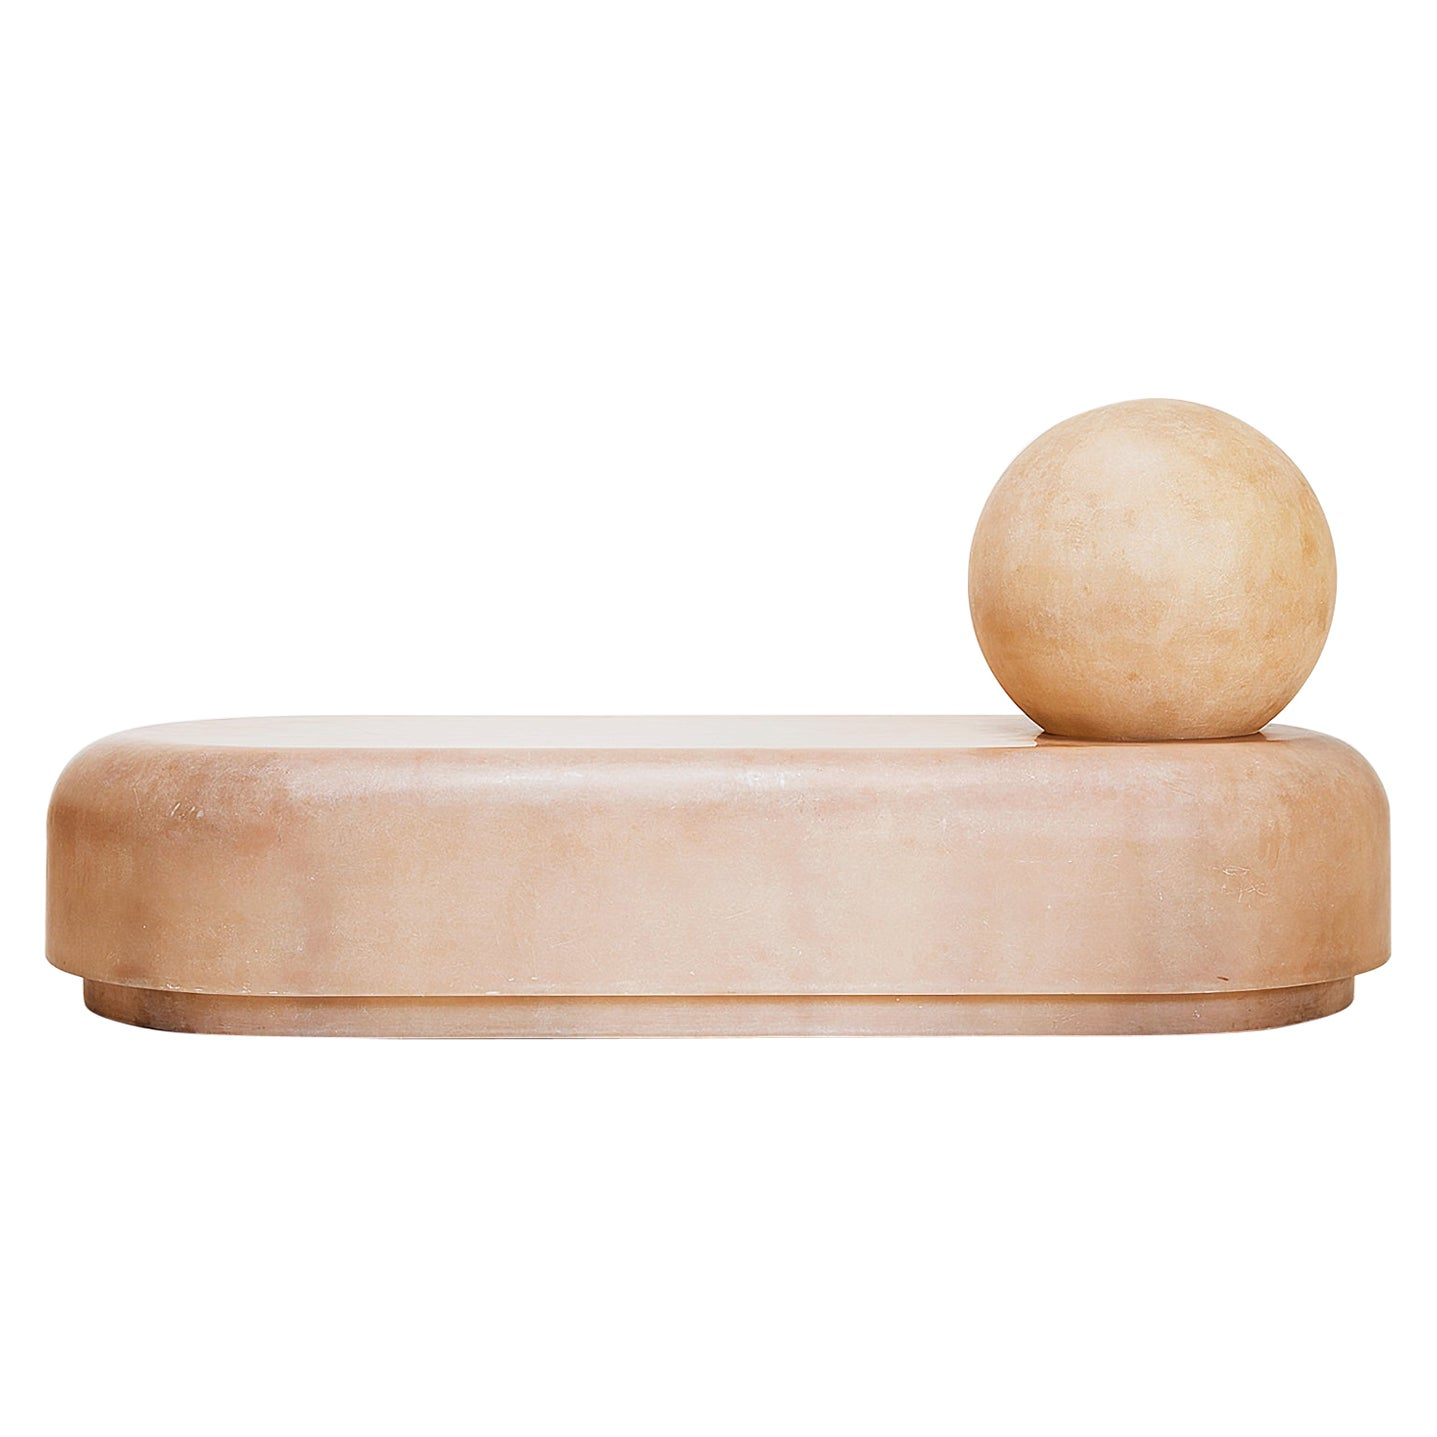 Faye Toogood, Roly-Poly Daybed Raw, Fiberglass, London, 2018